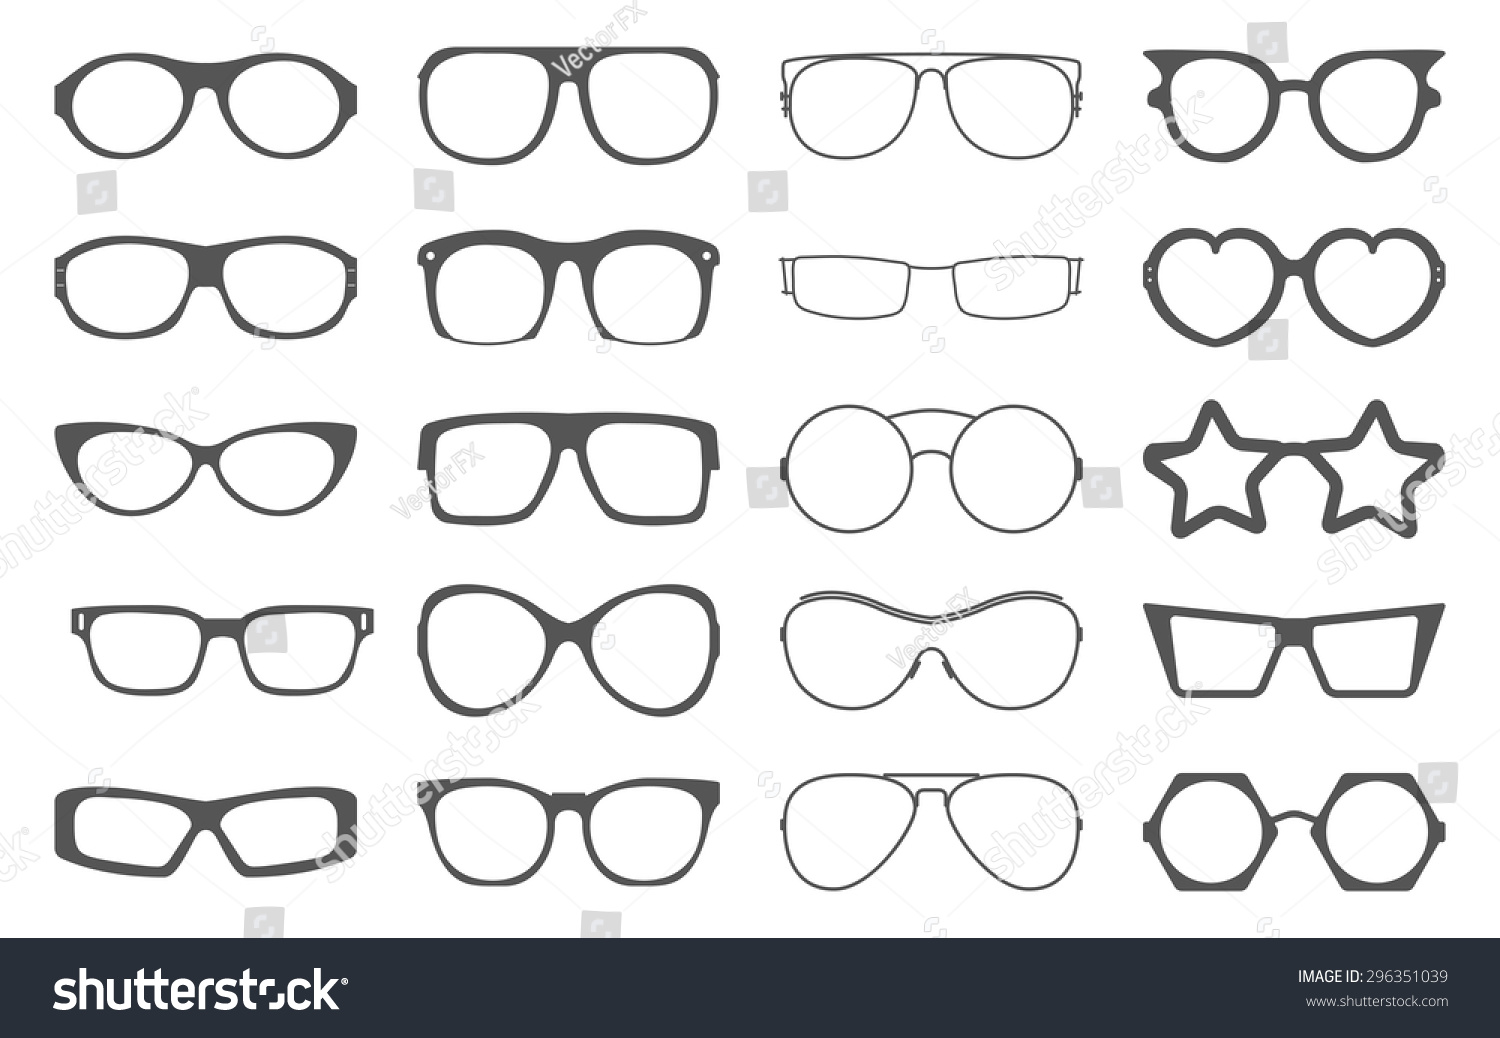 Set of spectacle frames on white background | EZ Canvas